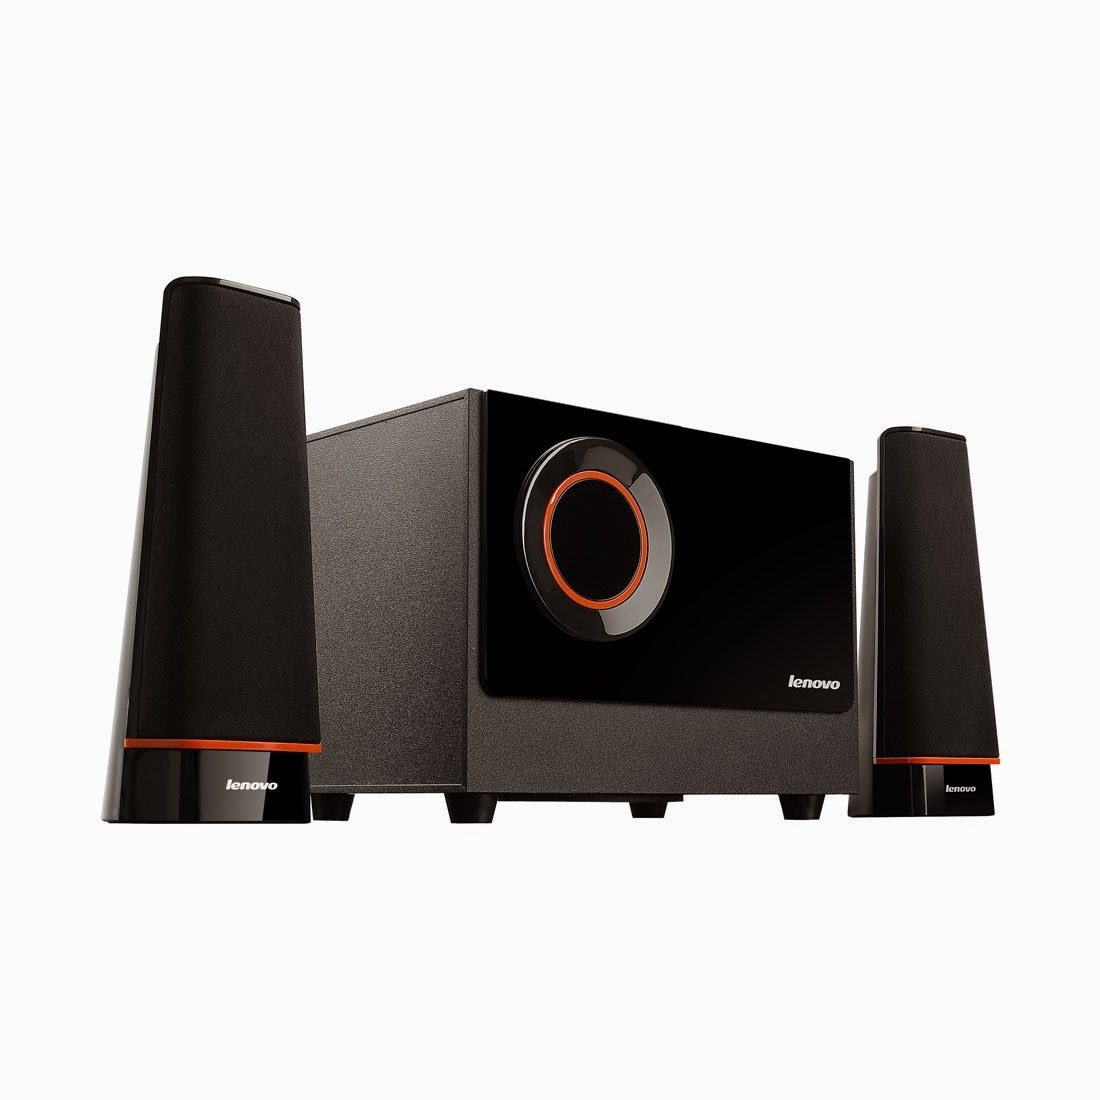 Buy Lenovo C1530 multimedia speaker Rs.1,020 only at Amazon.